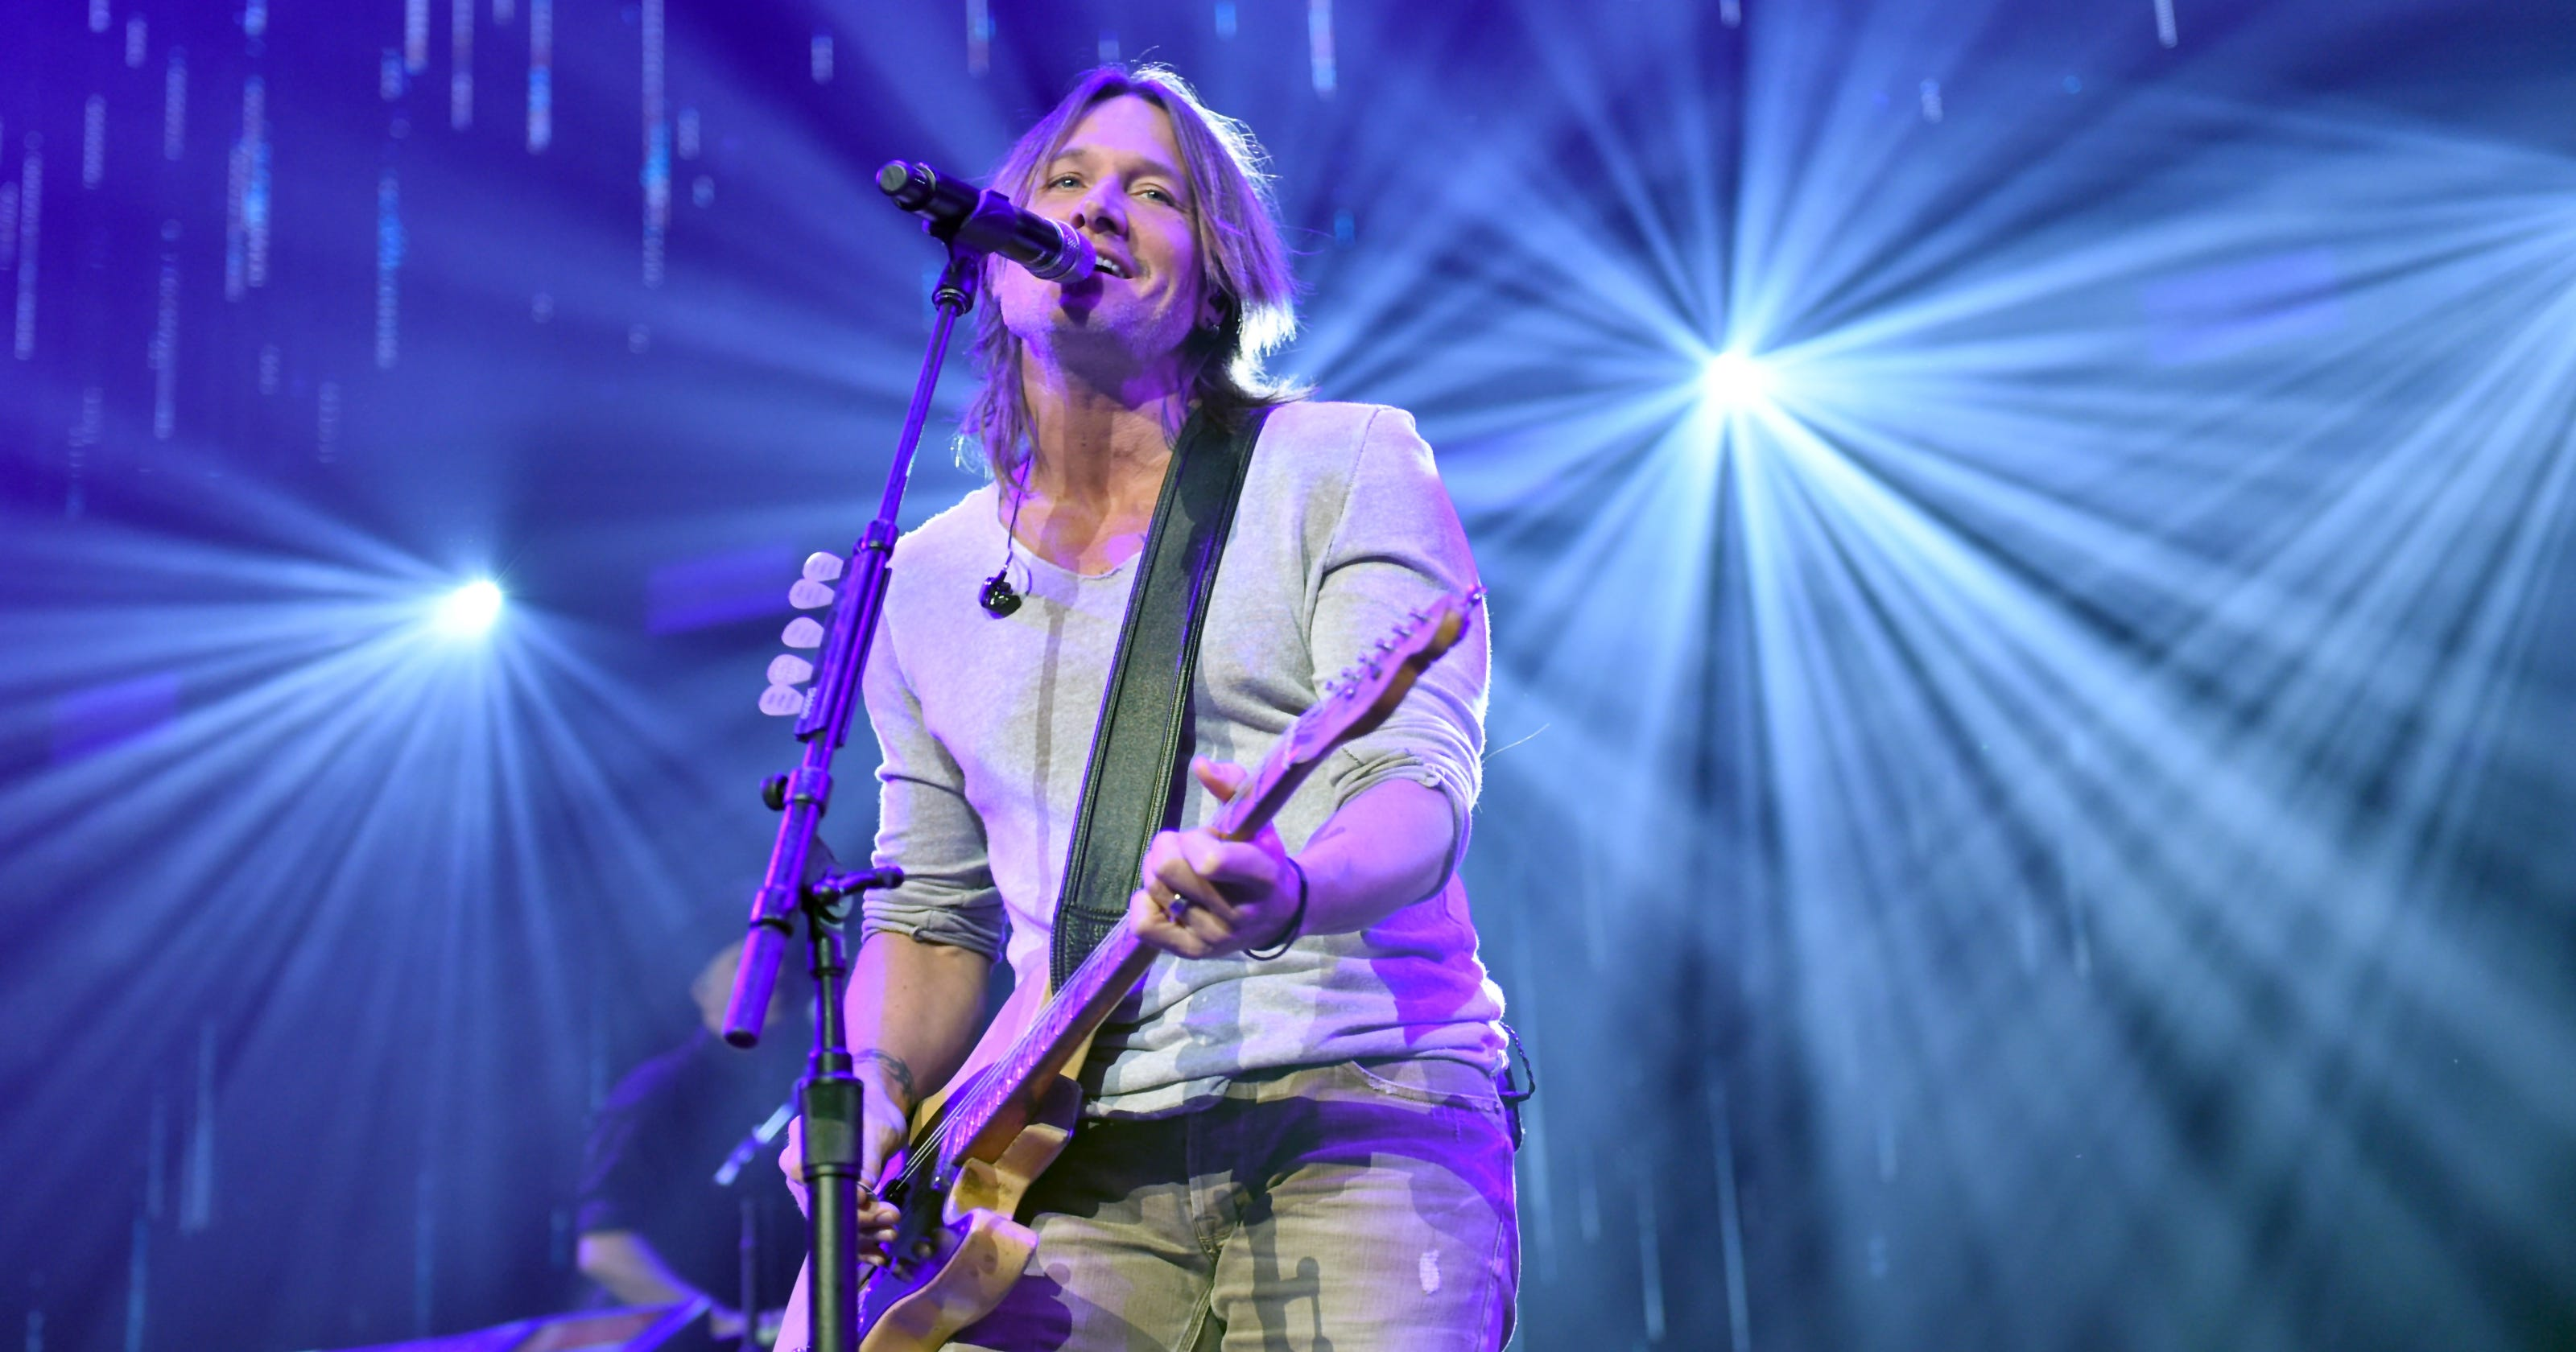 the fighter keith urban mp3 download free